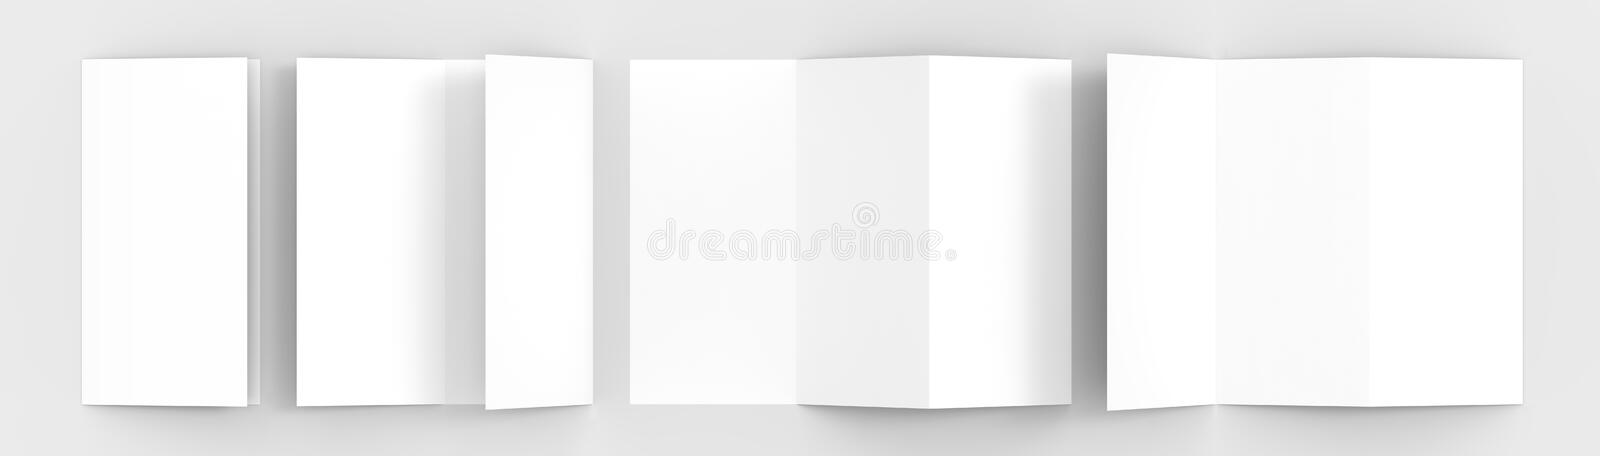 A4. Blank trifold paper brochure mock-up on soft gray background. With soft shadows and highlights. 3D illustrating royalty free illustration